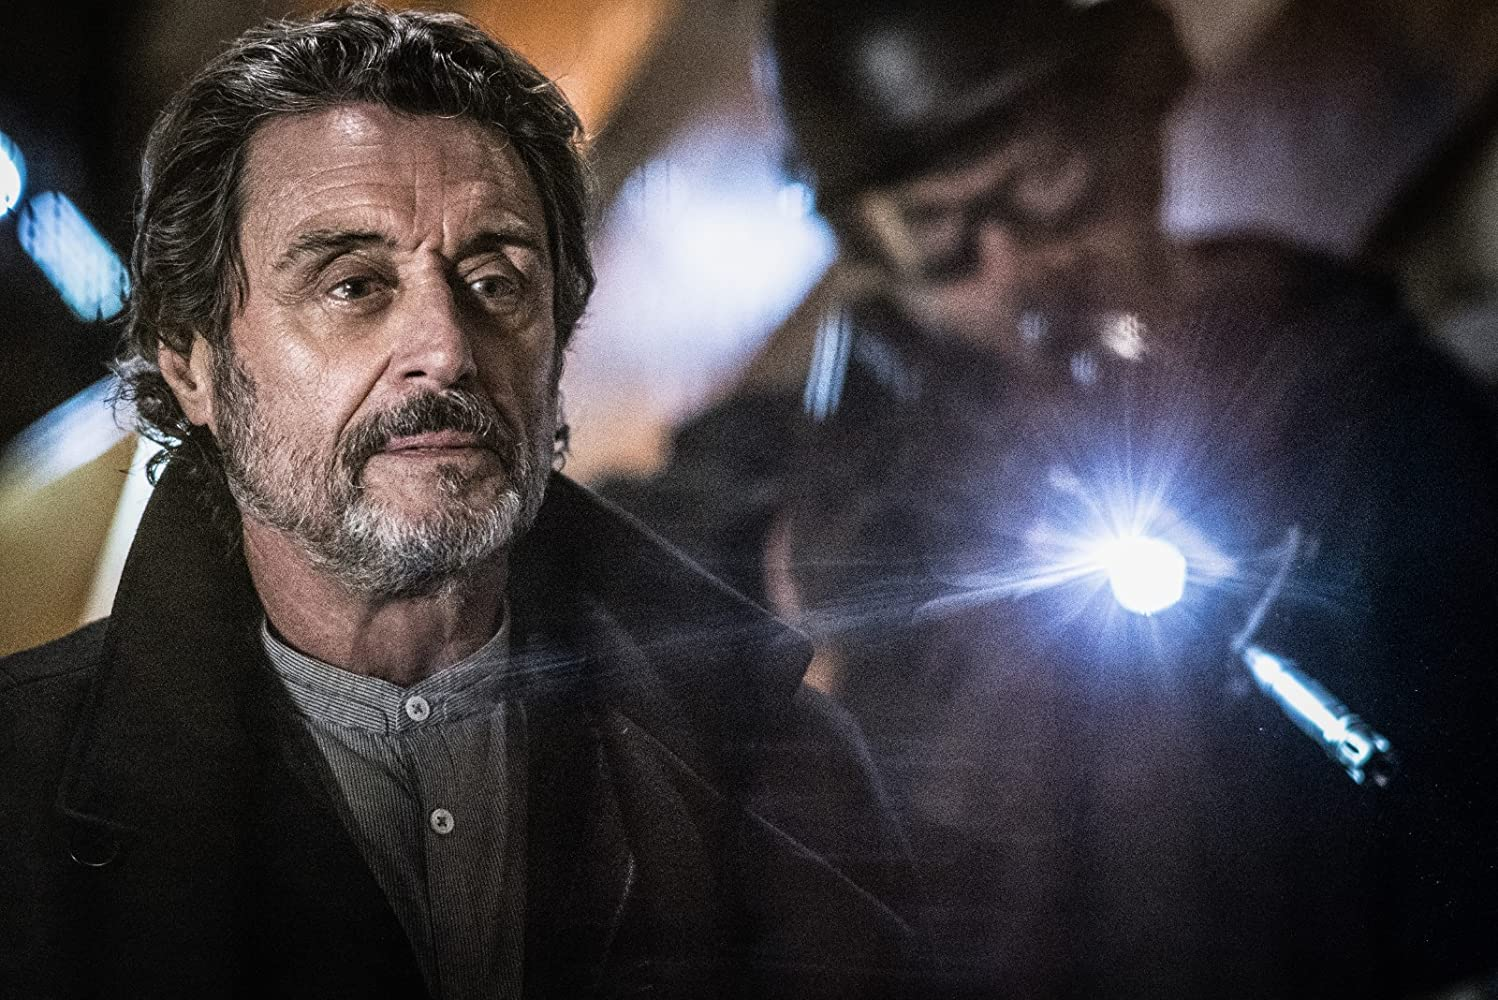 Ian McShane / Hellboy / Summit Entertainment. © 2019. All rights reserved.